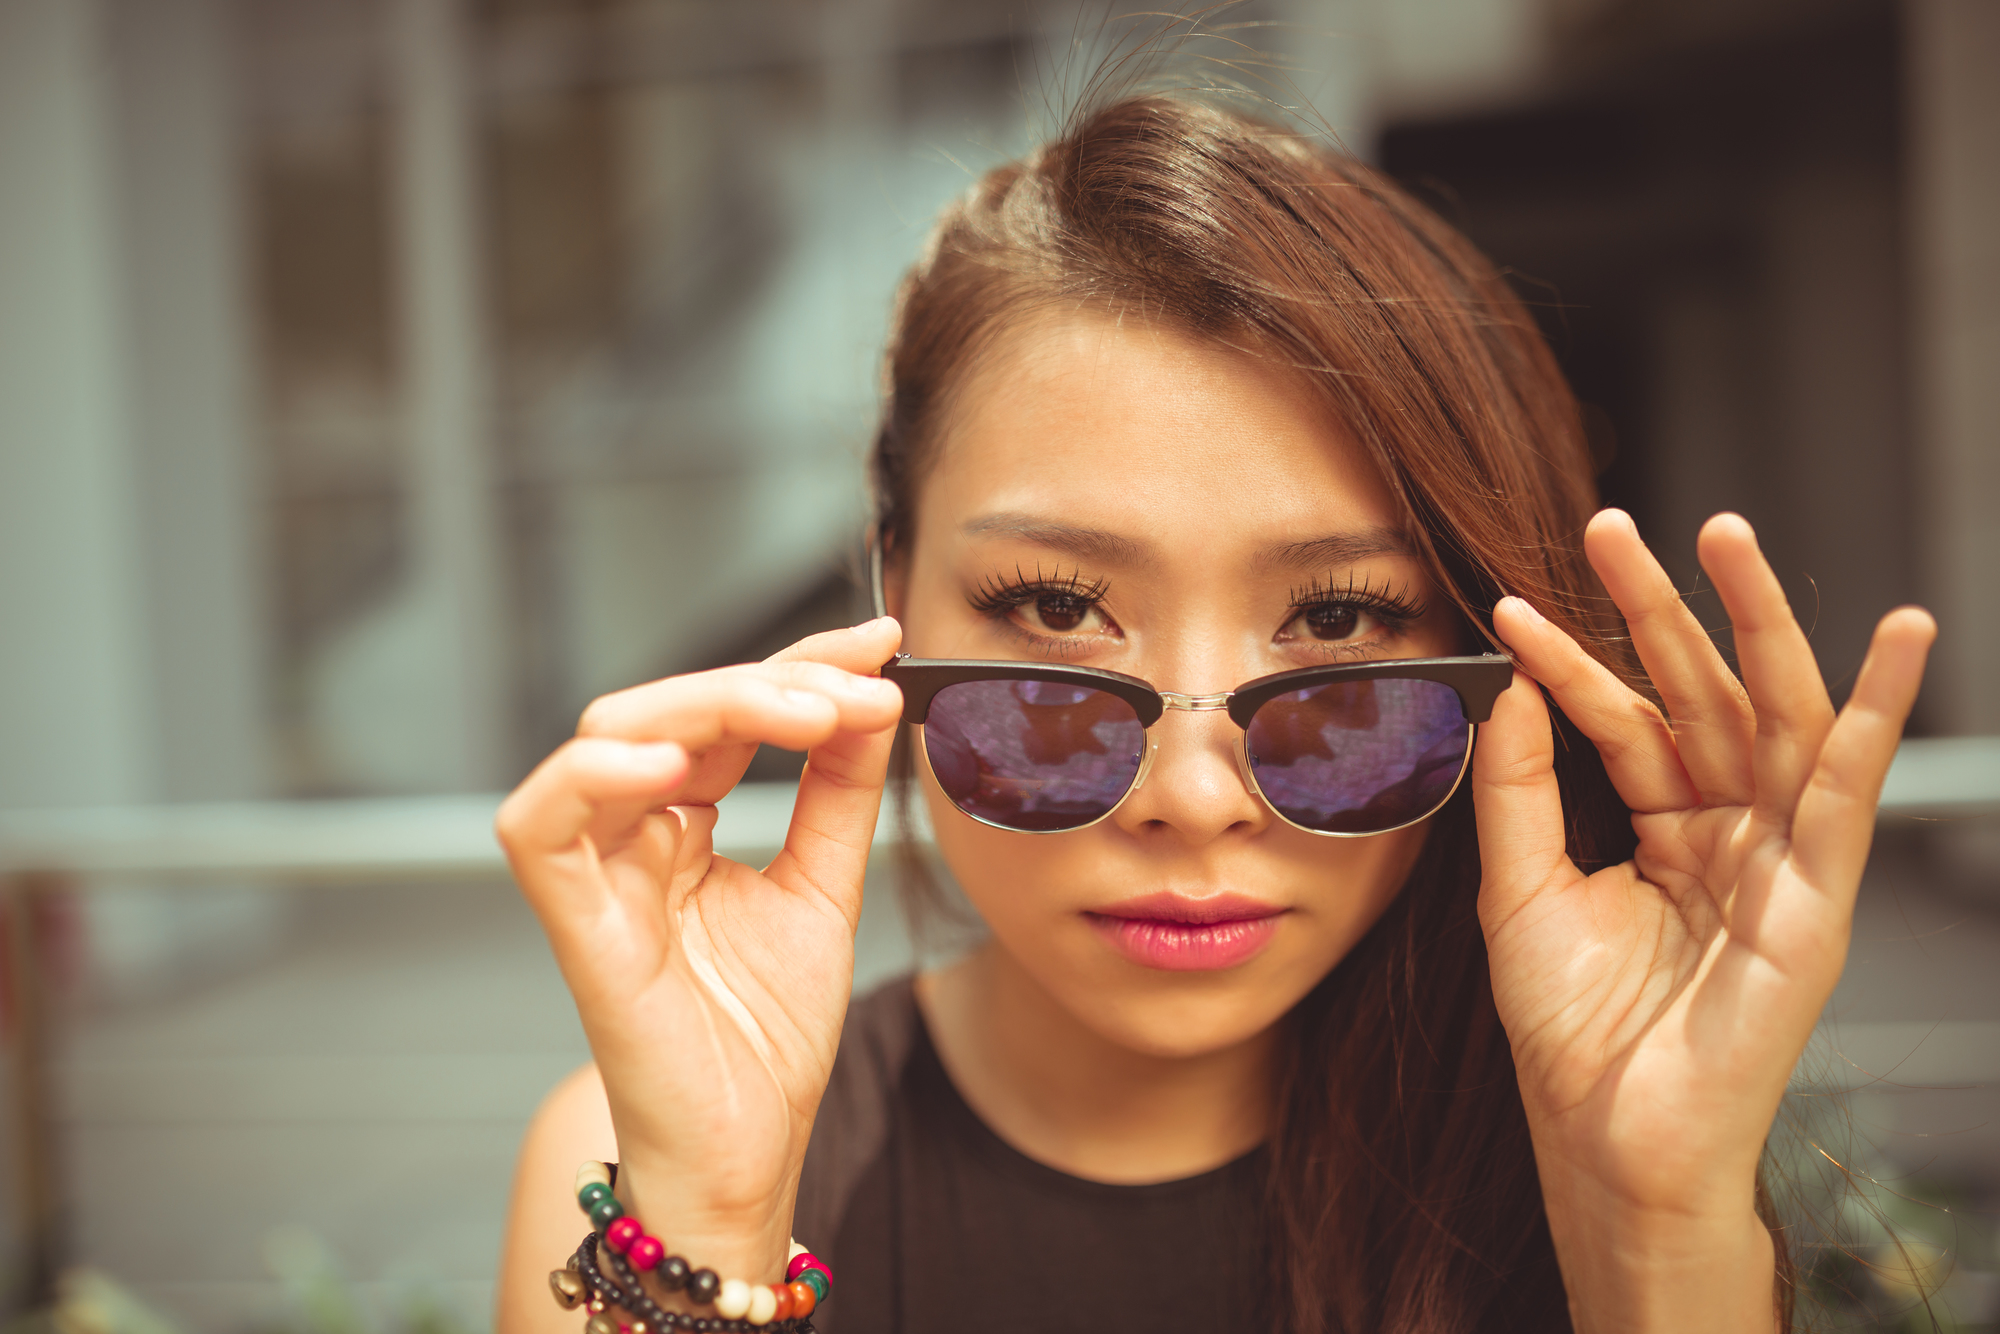 Beautiful Vietnamese woman with sunglasses looking at camera